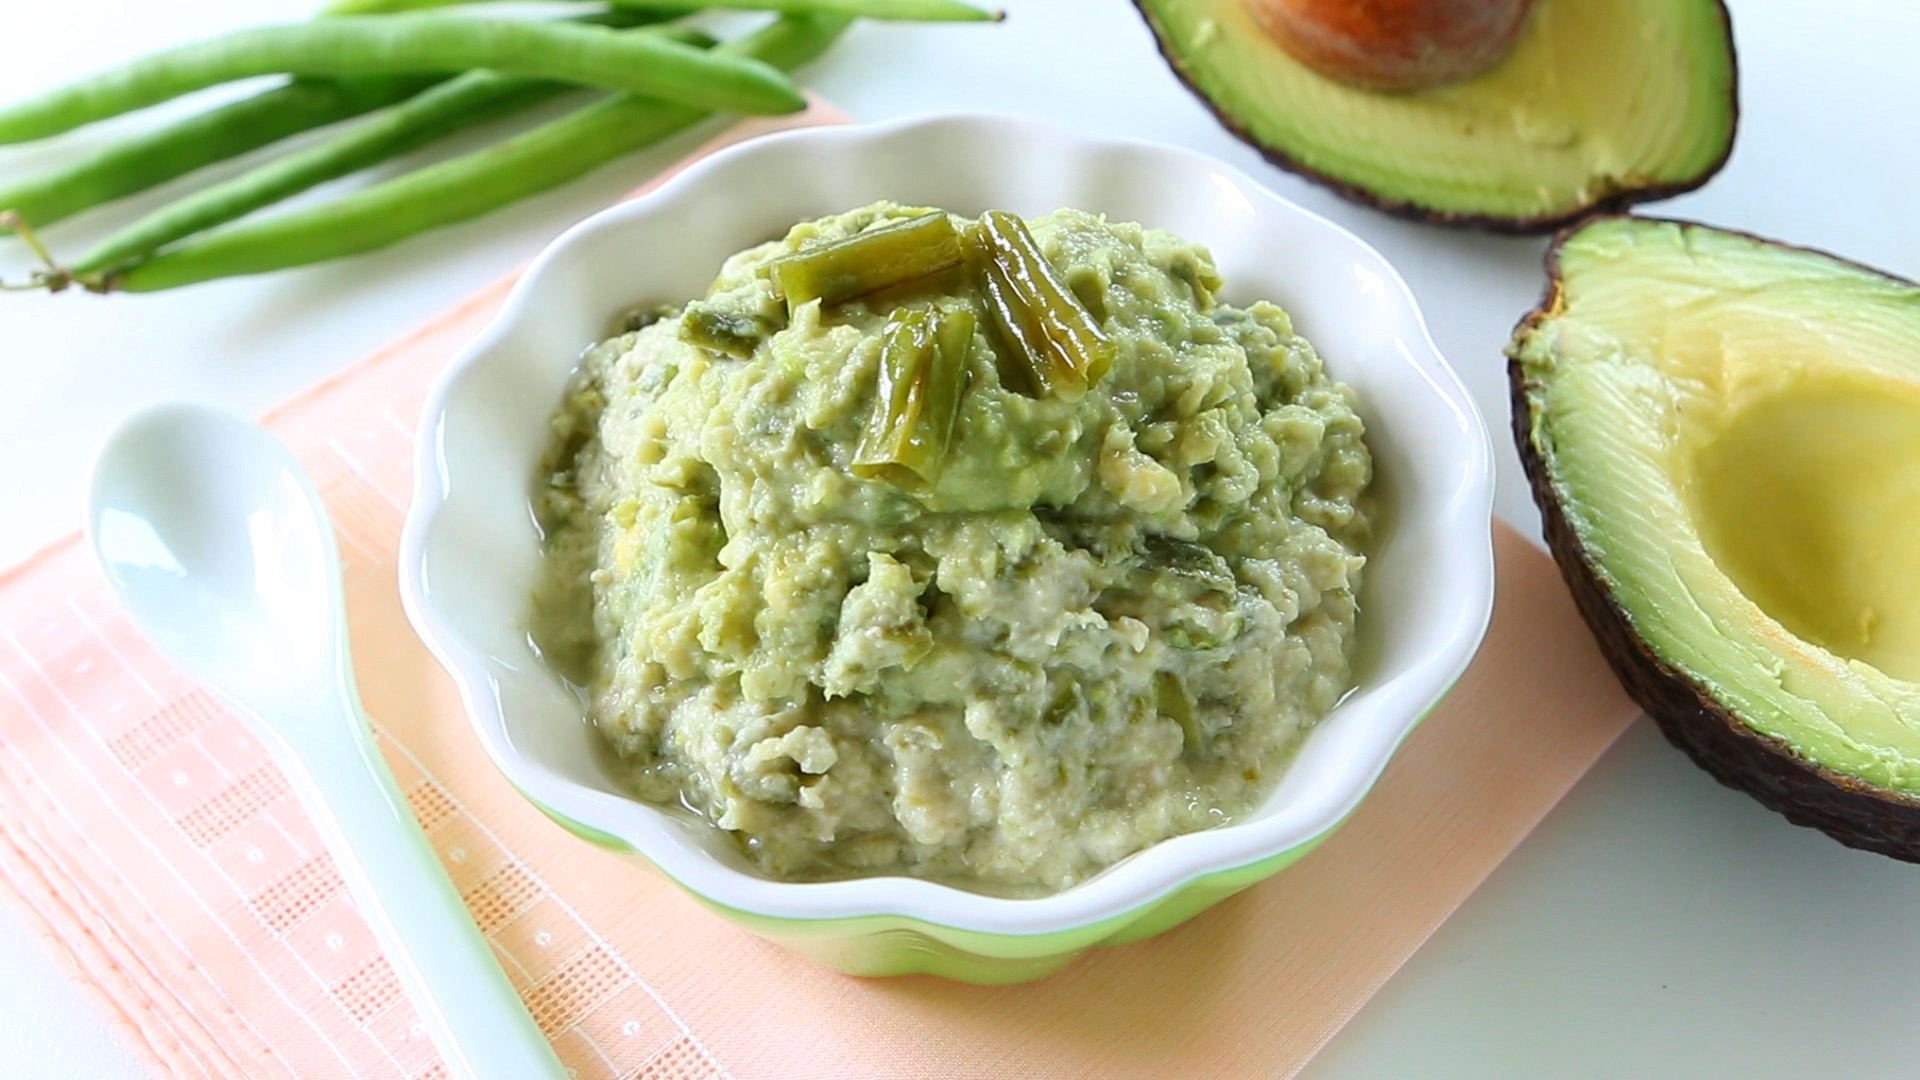 Green beans chicken and avocado baby food   Buona Pappa - photo#34